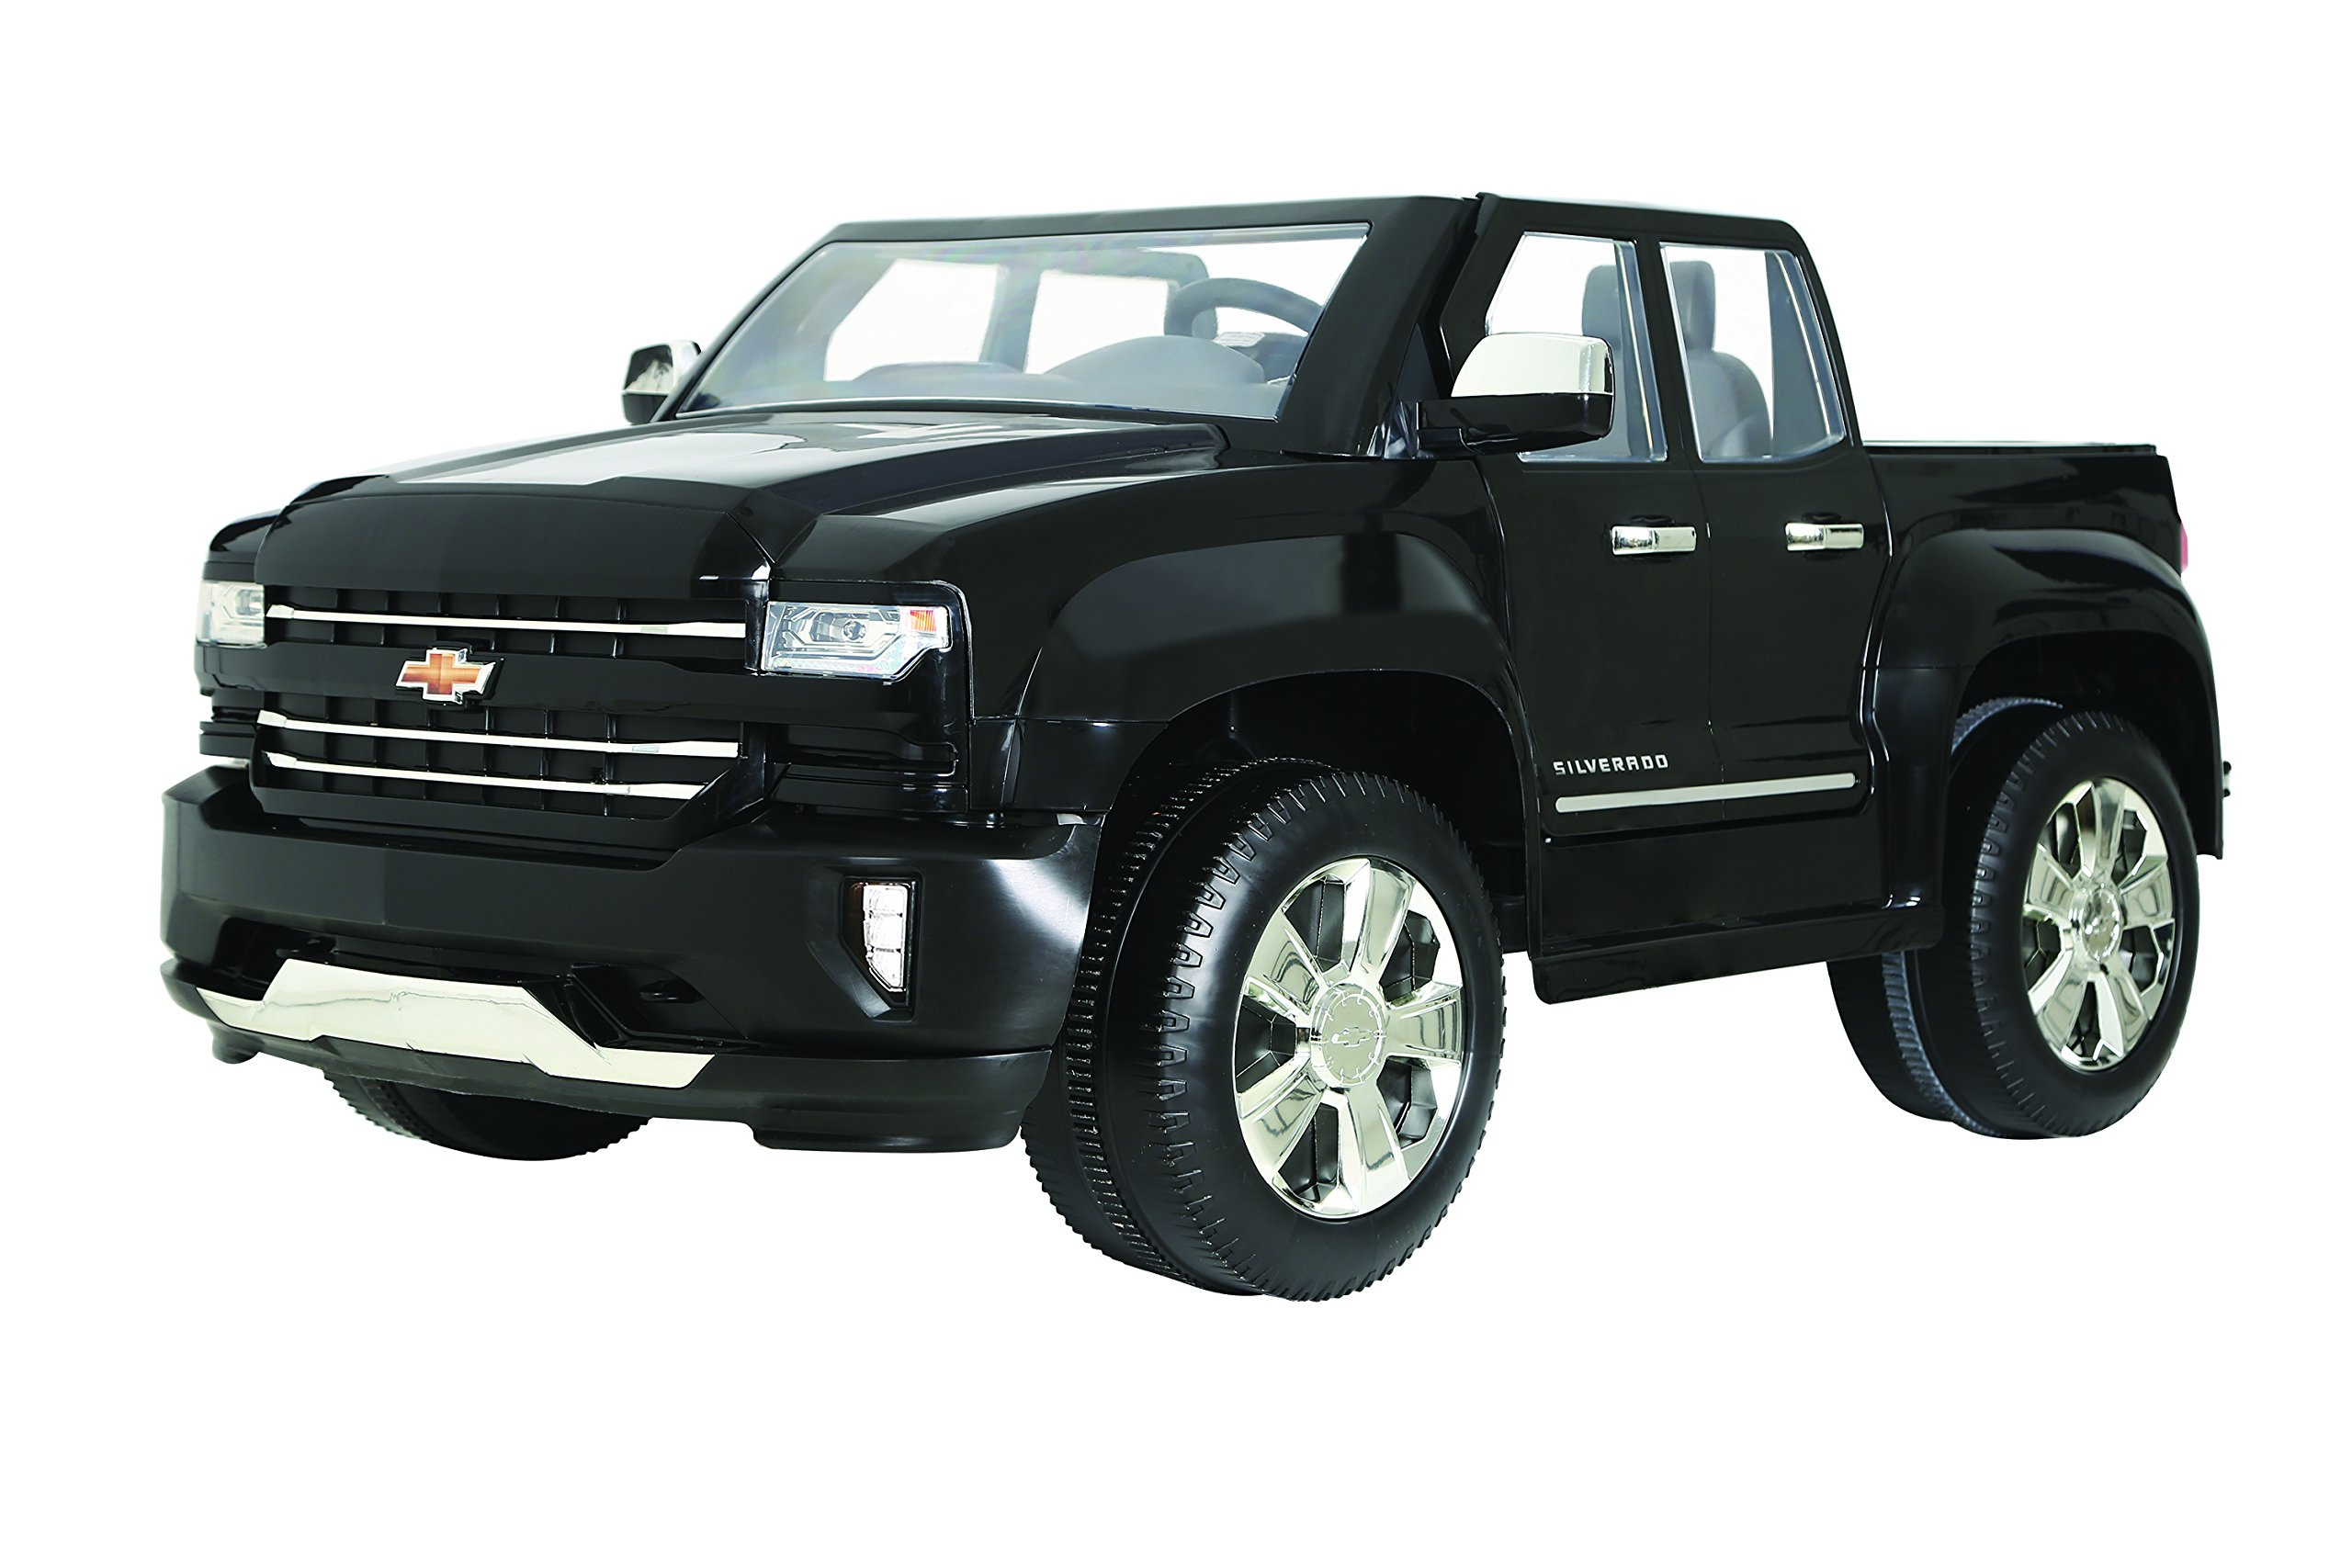 Rollplay W461-P 12V Chevy Silverado Truck Ride On Toy, Battery-Powered Kid's Ride On Car - Black, Small